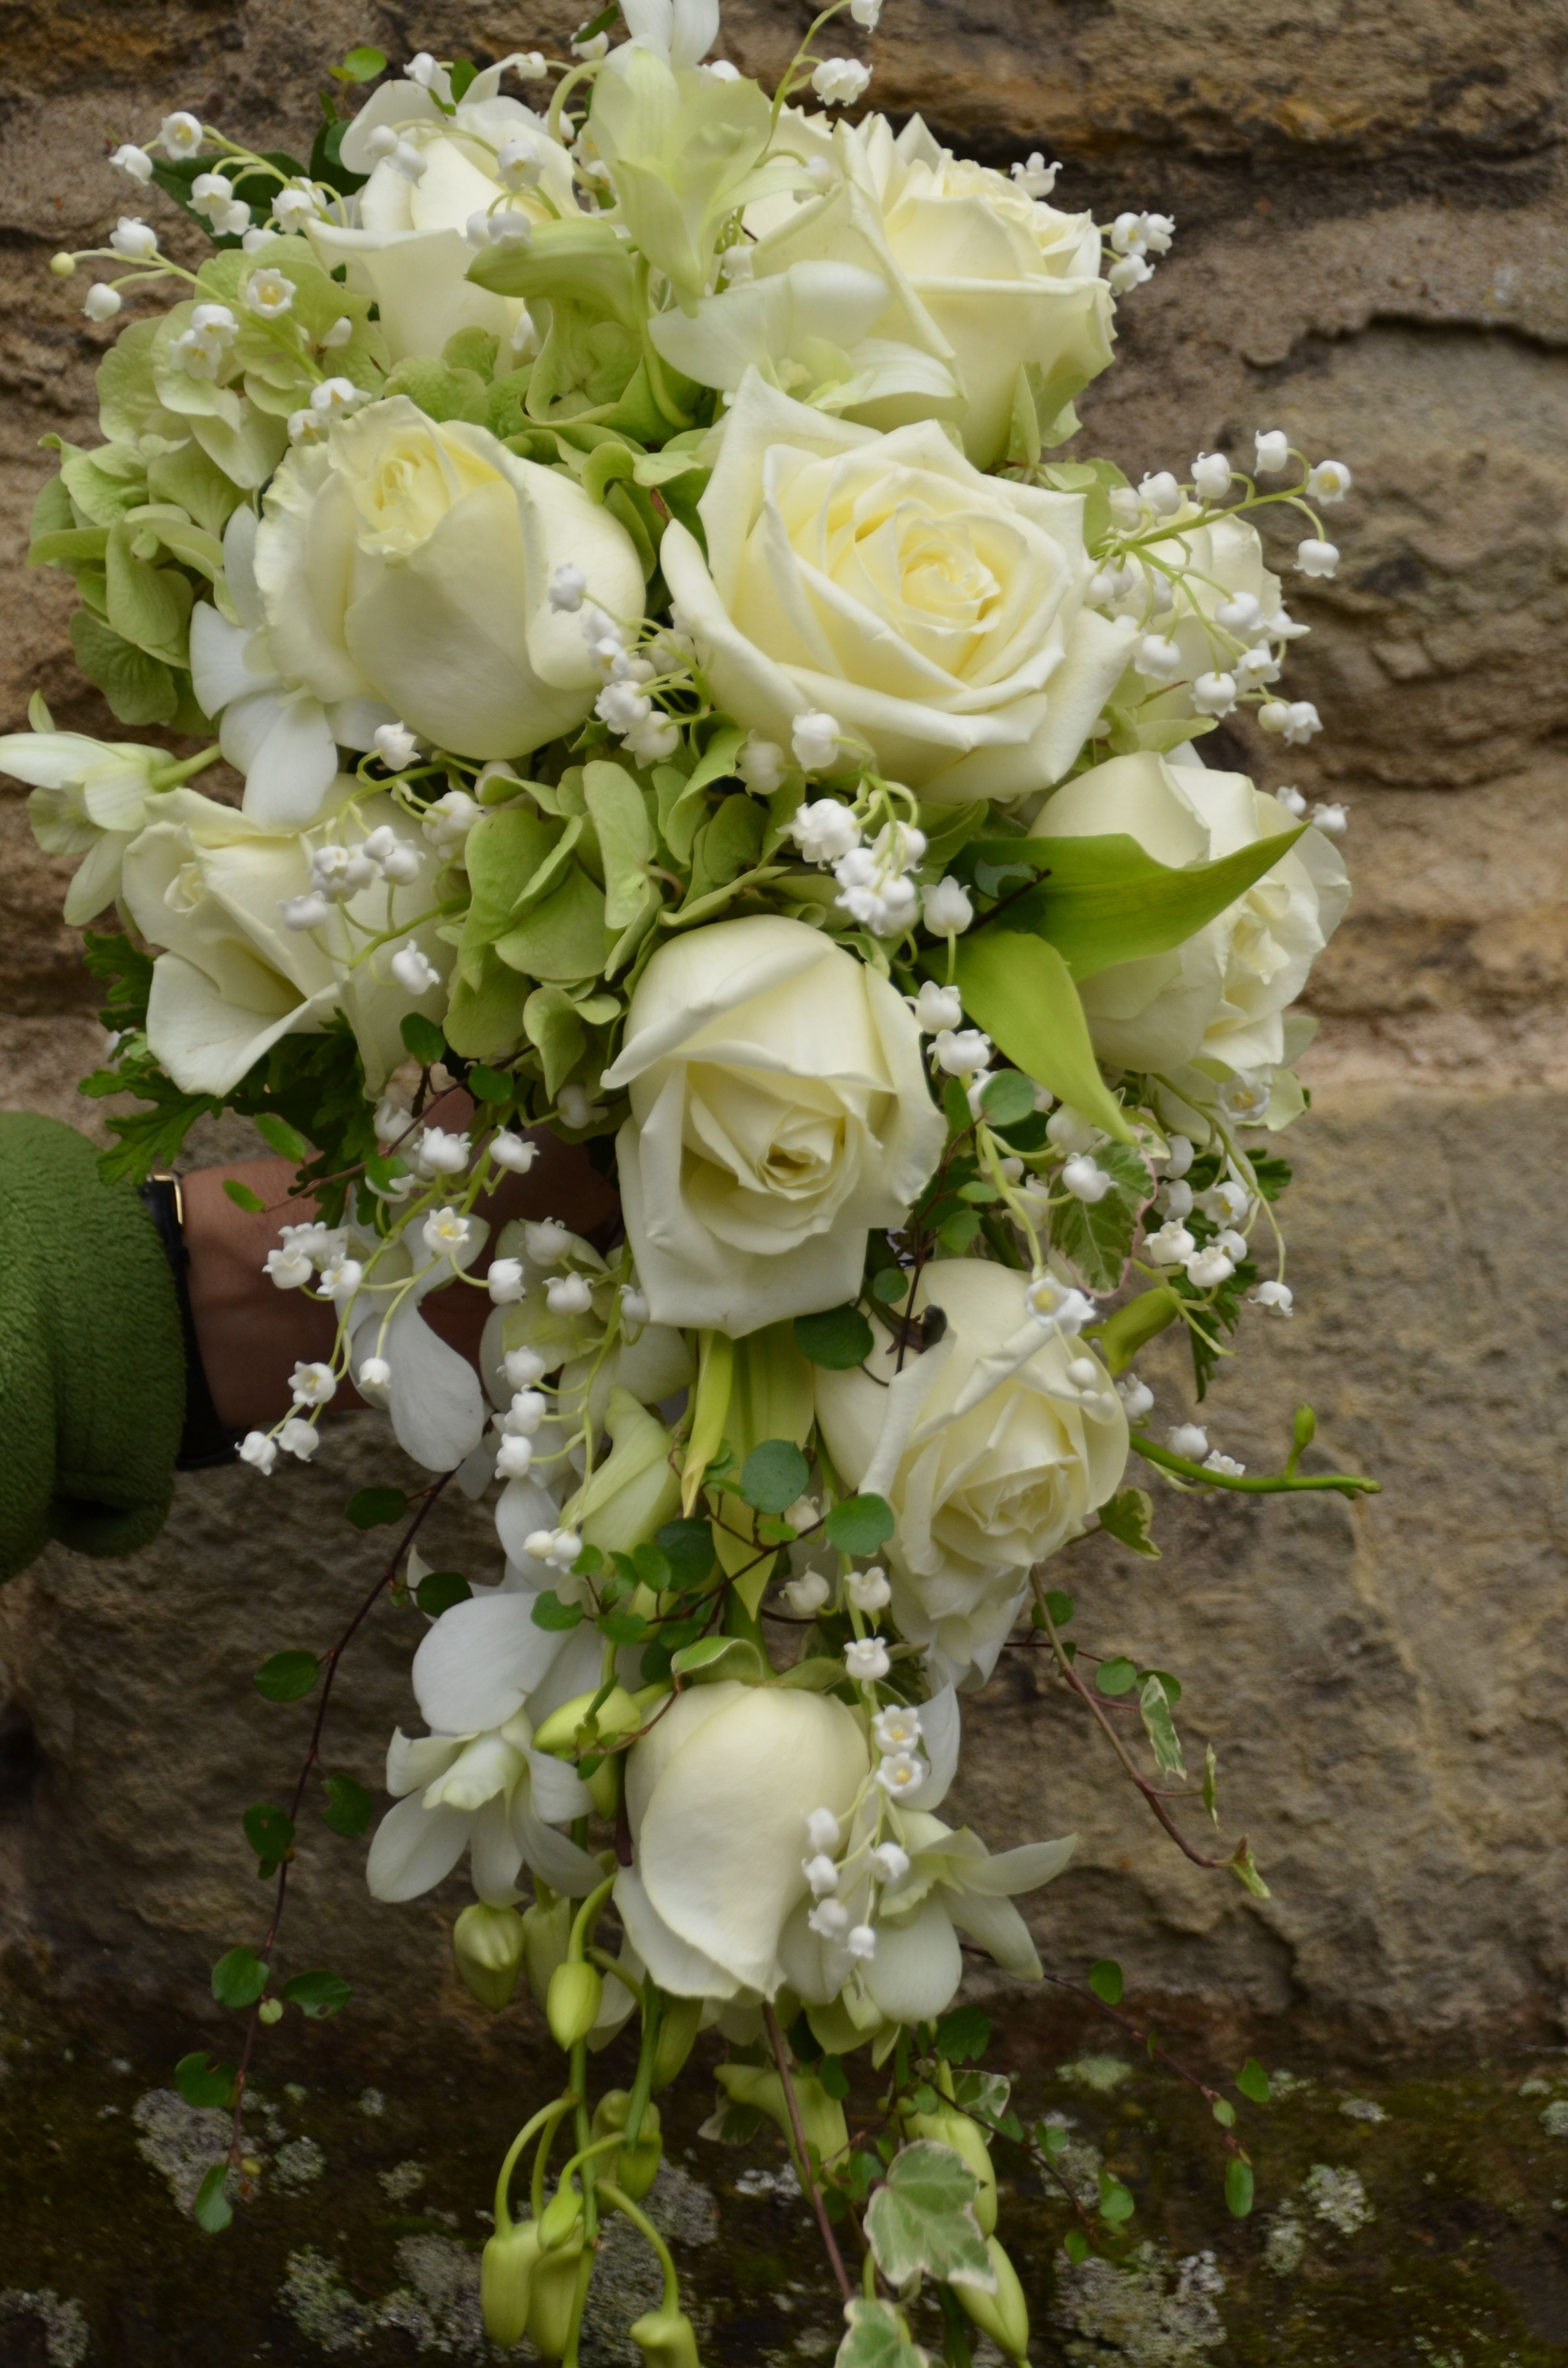 tailing shower bouquet of roses and lily of the valley